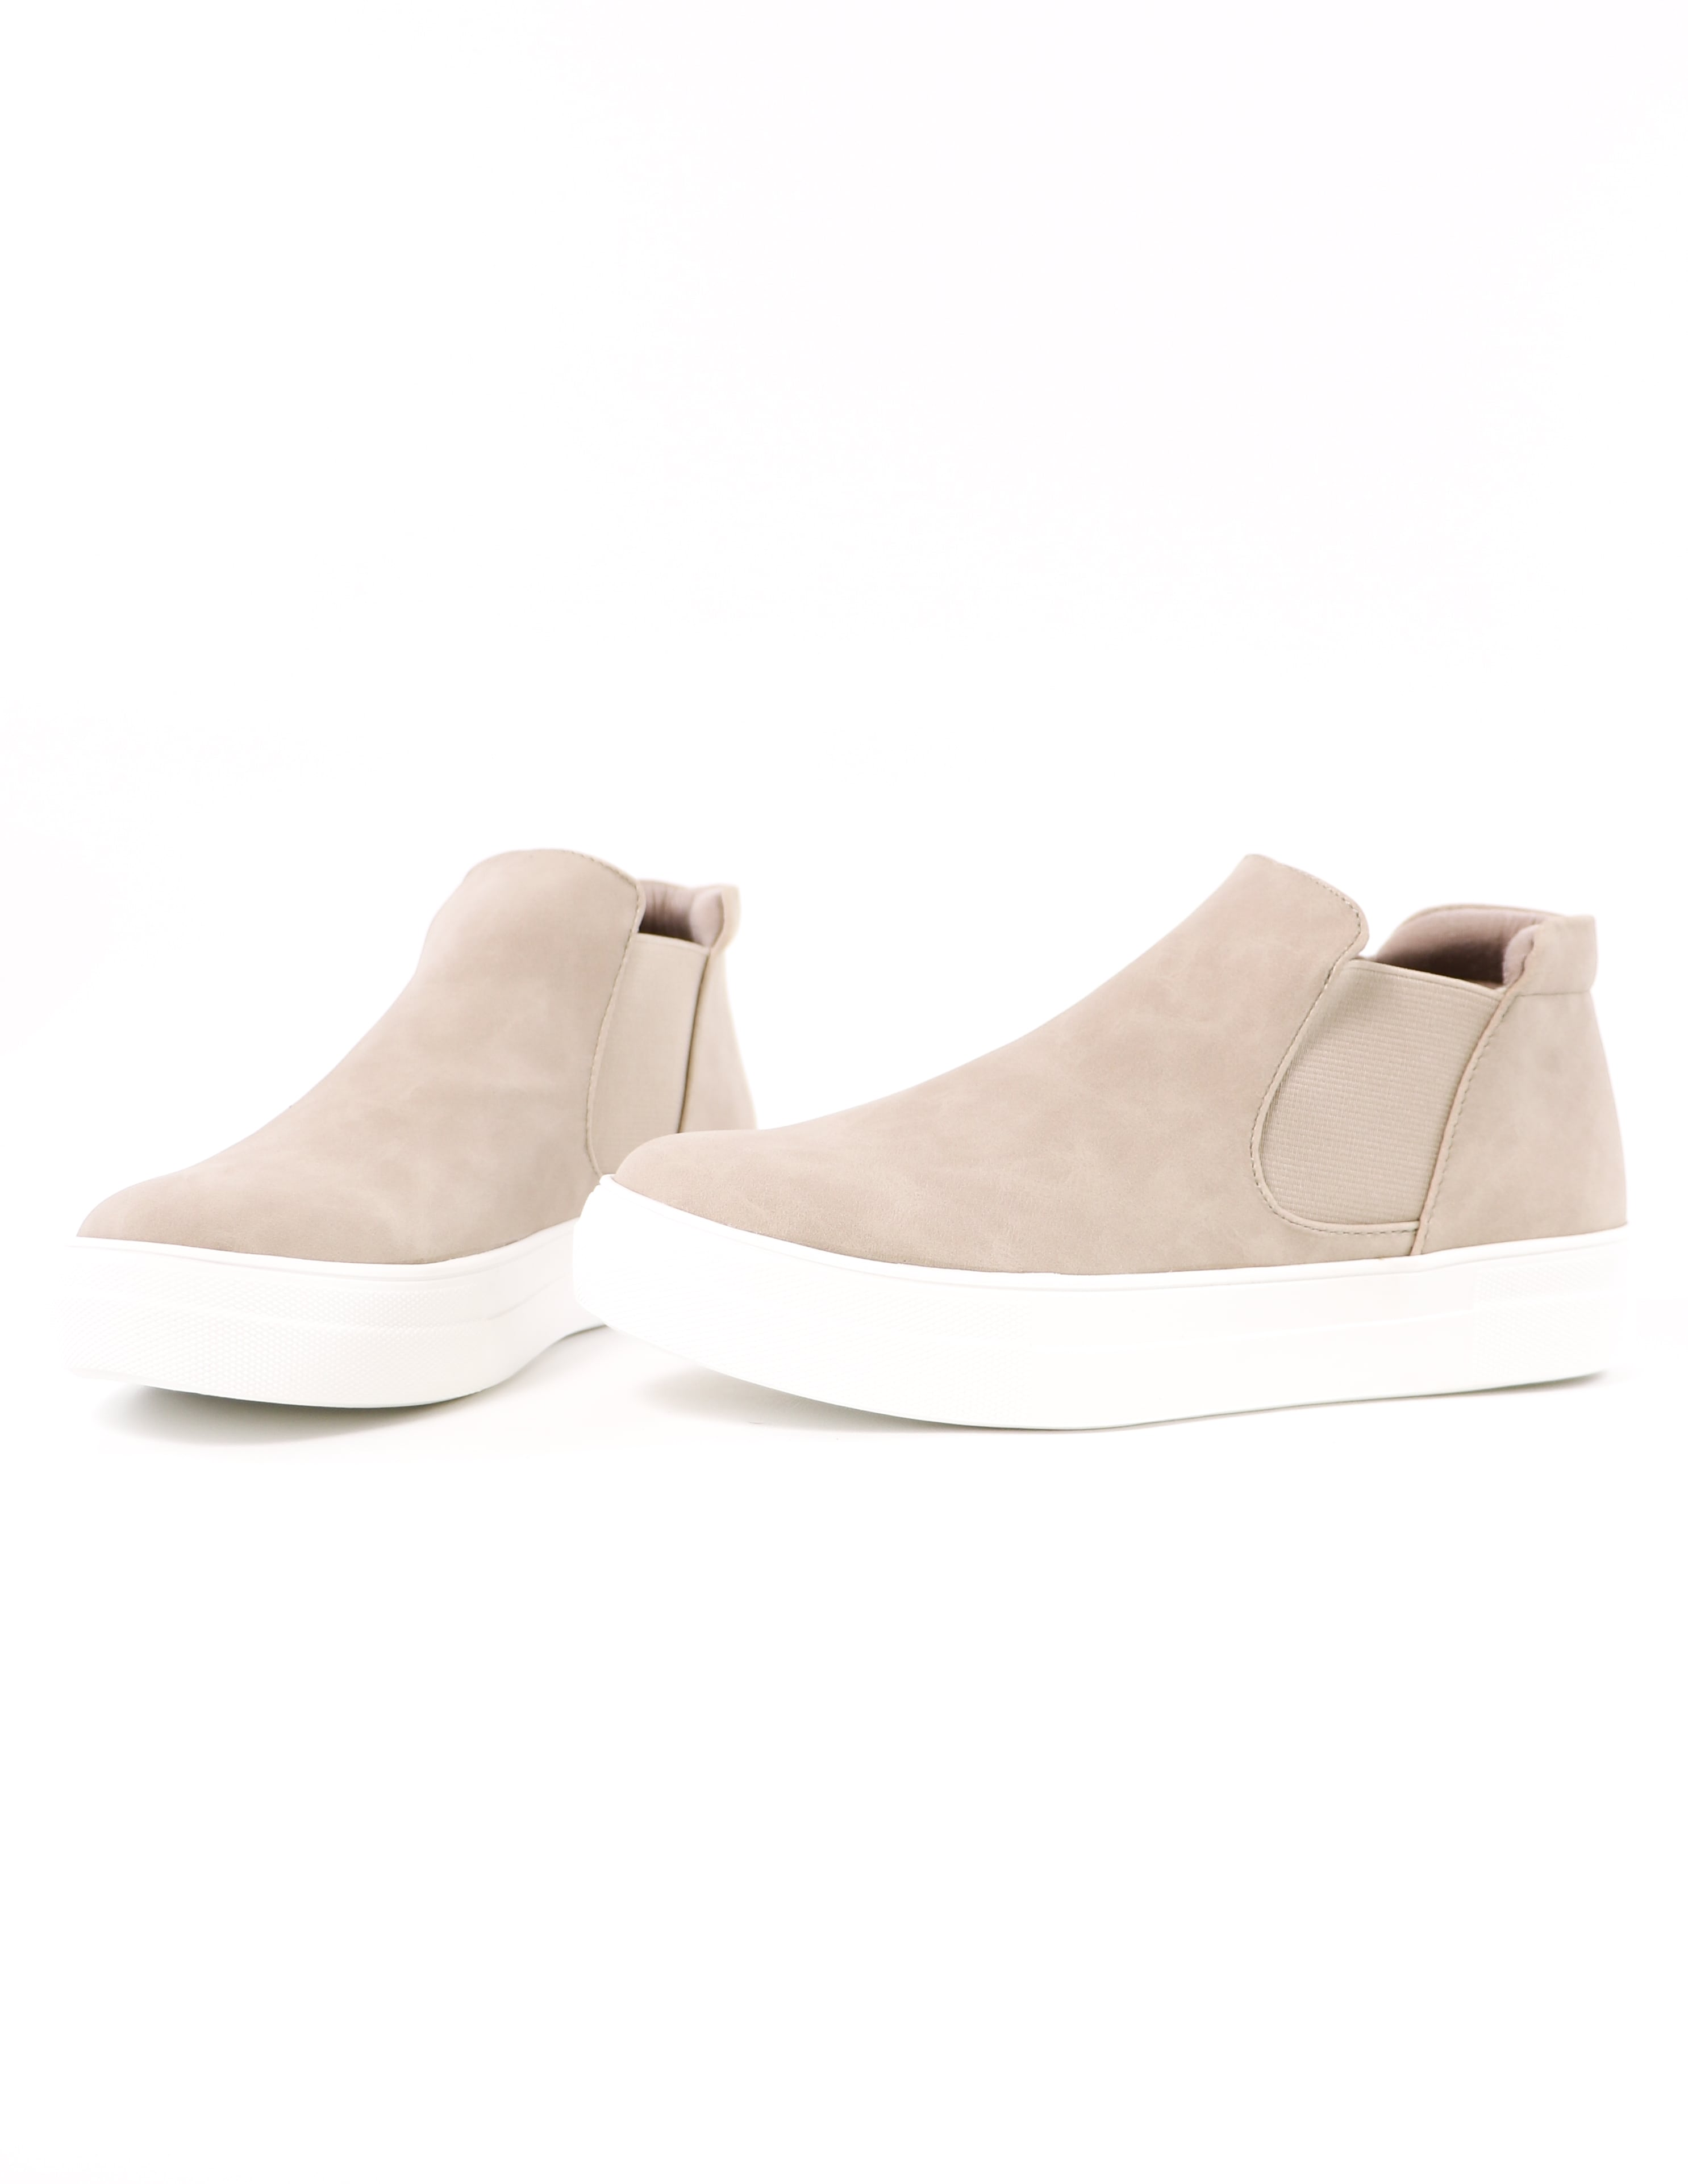 high top sand now or never platform sneakers on white background - elle bleu shoes